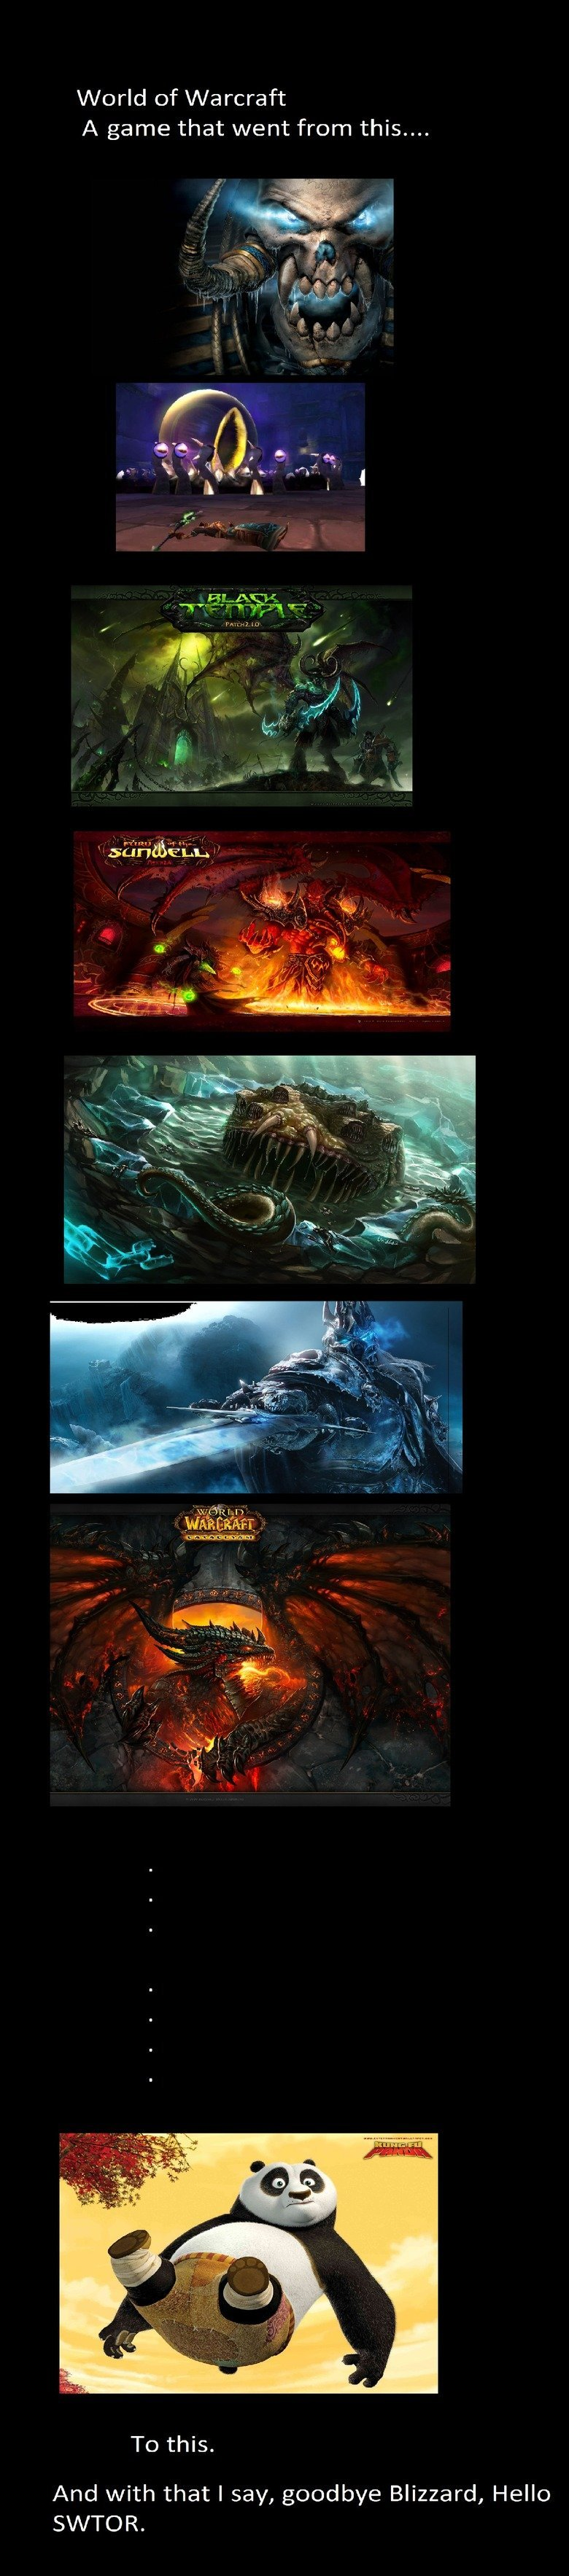 The Mists of Pandaria. I've been playing non-stop since 2005 through think and thin, from Onyxia to The Lich King to the madness of Yogg-Saron and C'thun to the